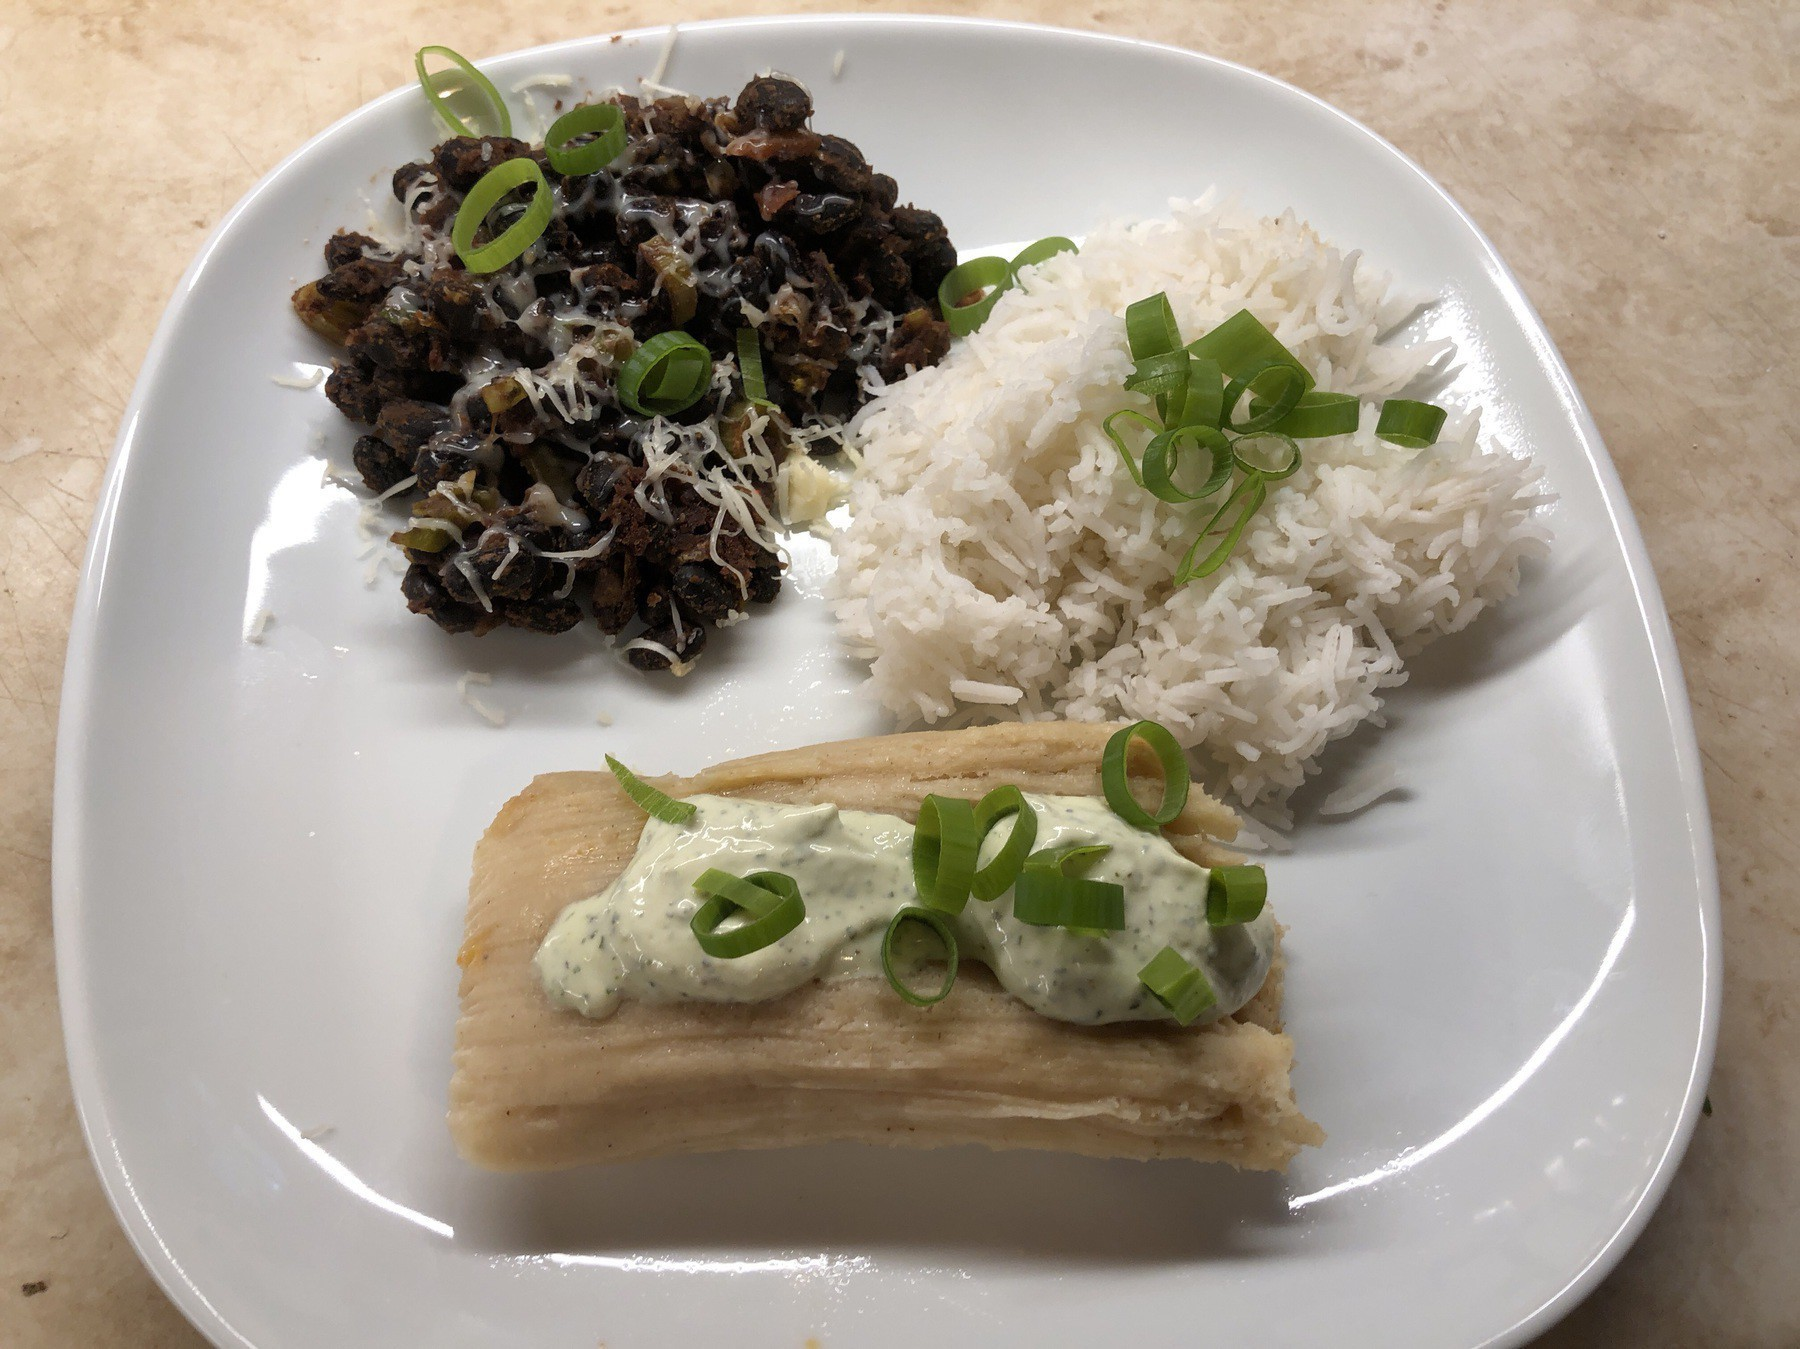 Empanada,black beans, and rice on plate.